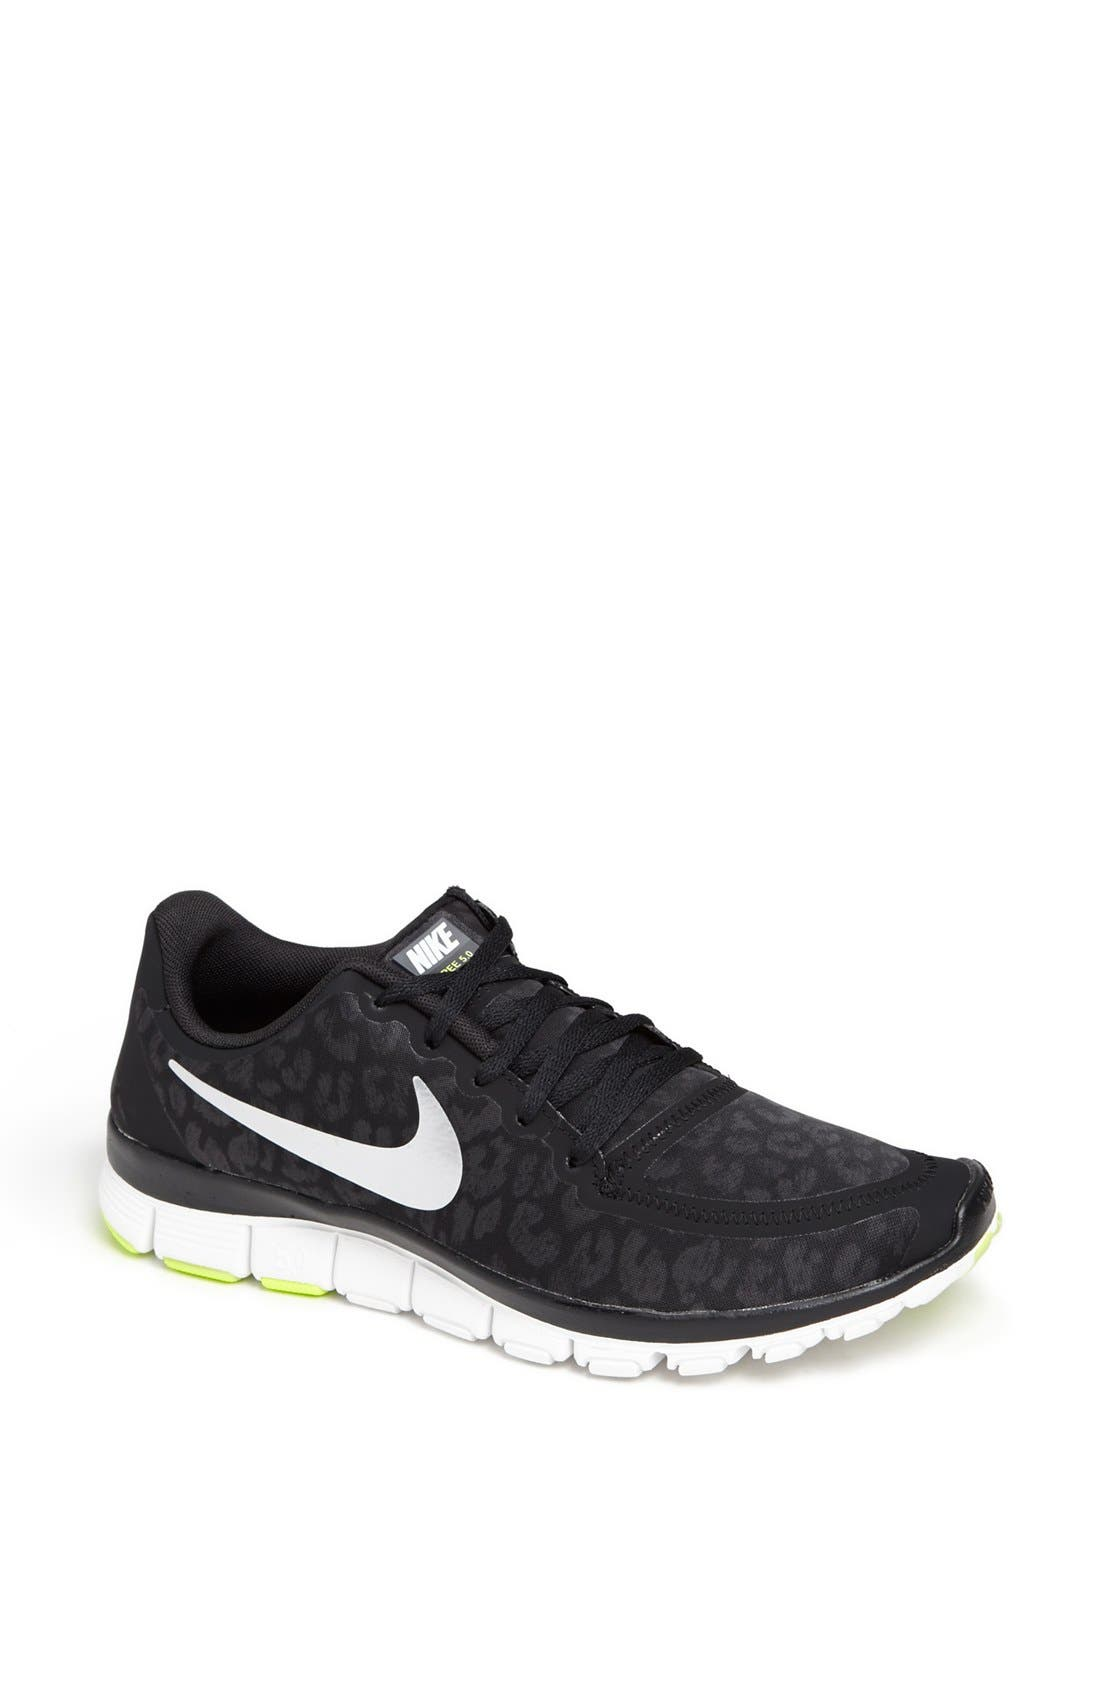 Alternate Image 1 Selected - Nike 'Free 5.0 V4' Running Shoe (Women)